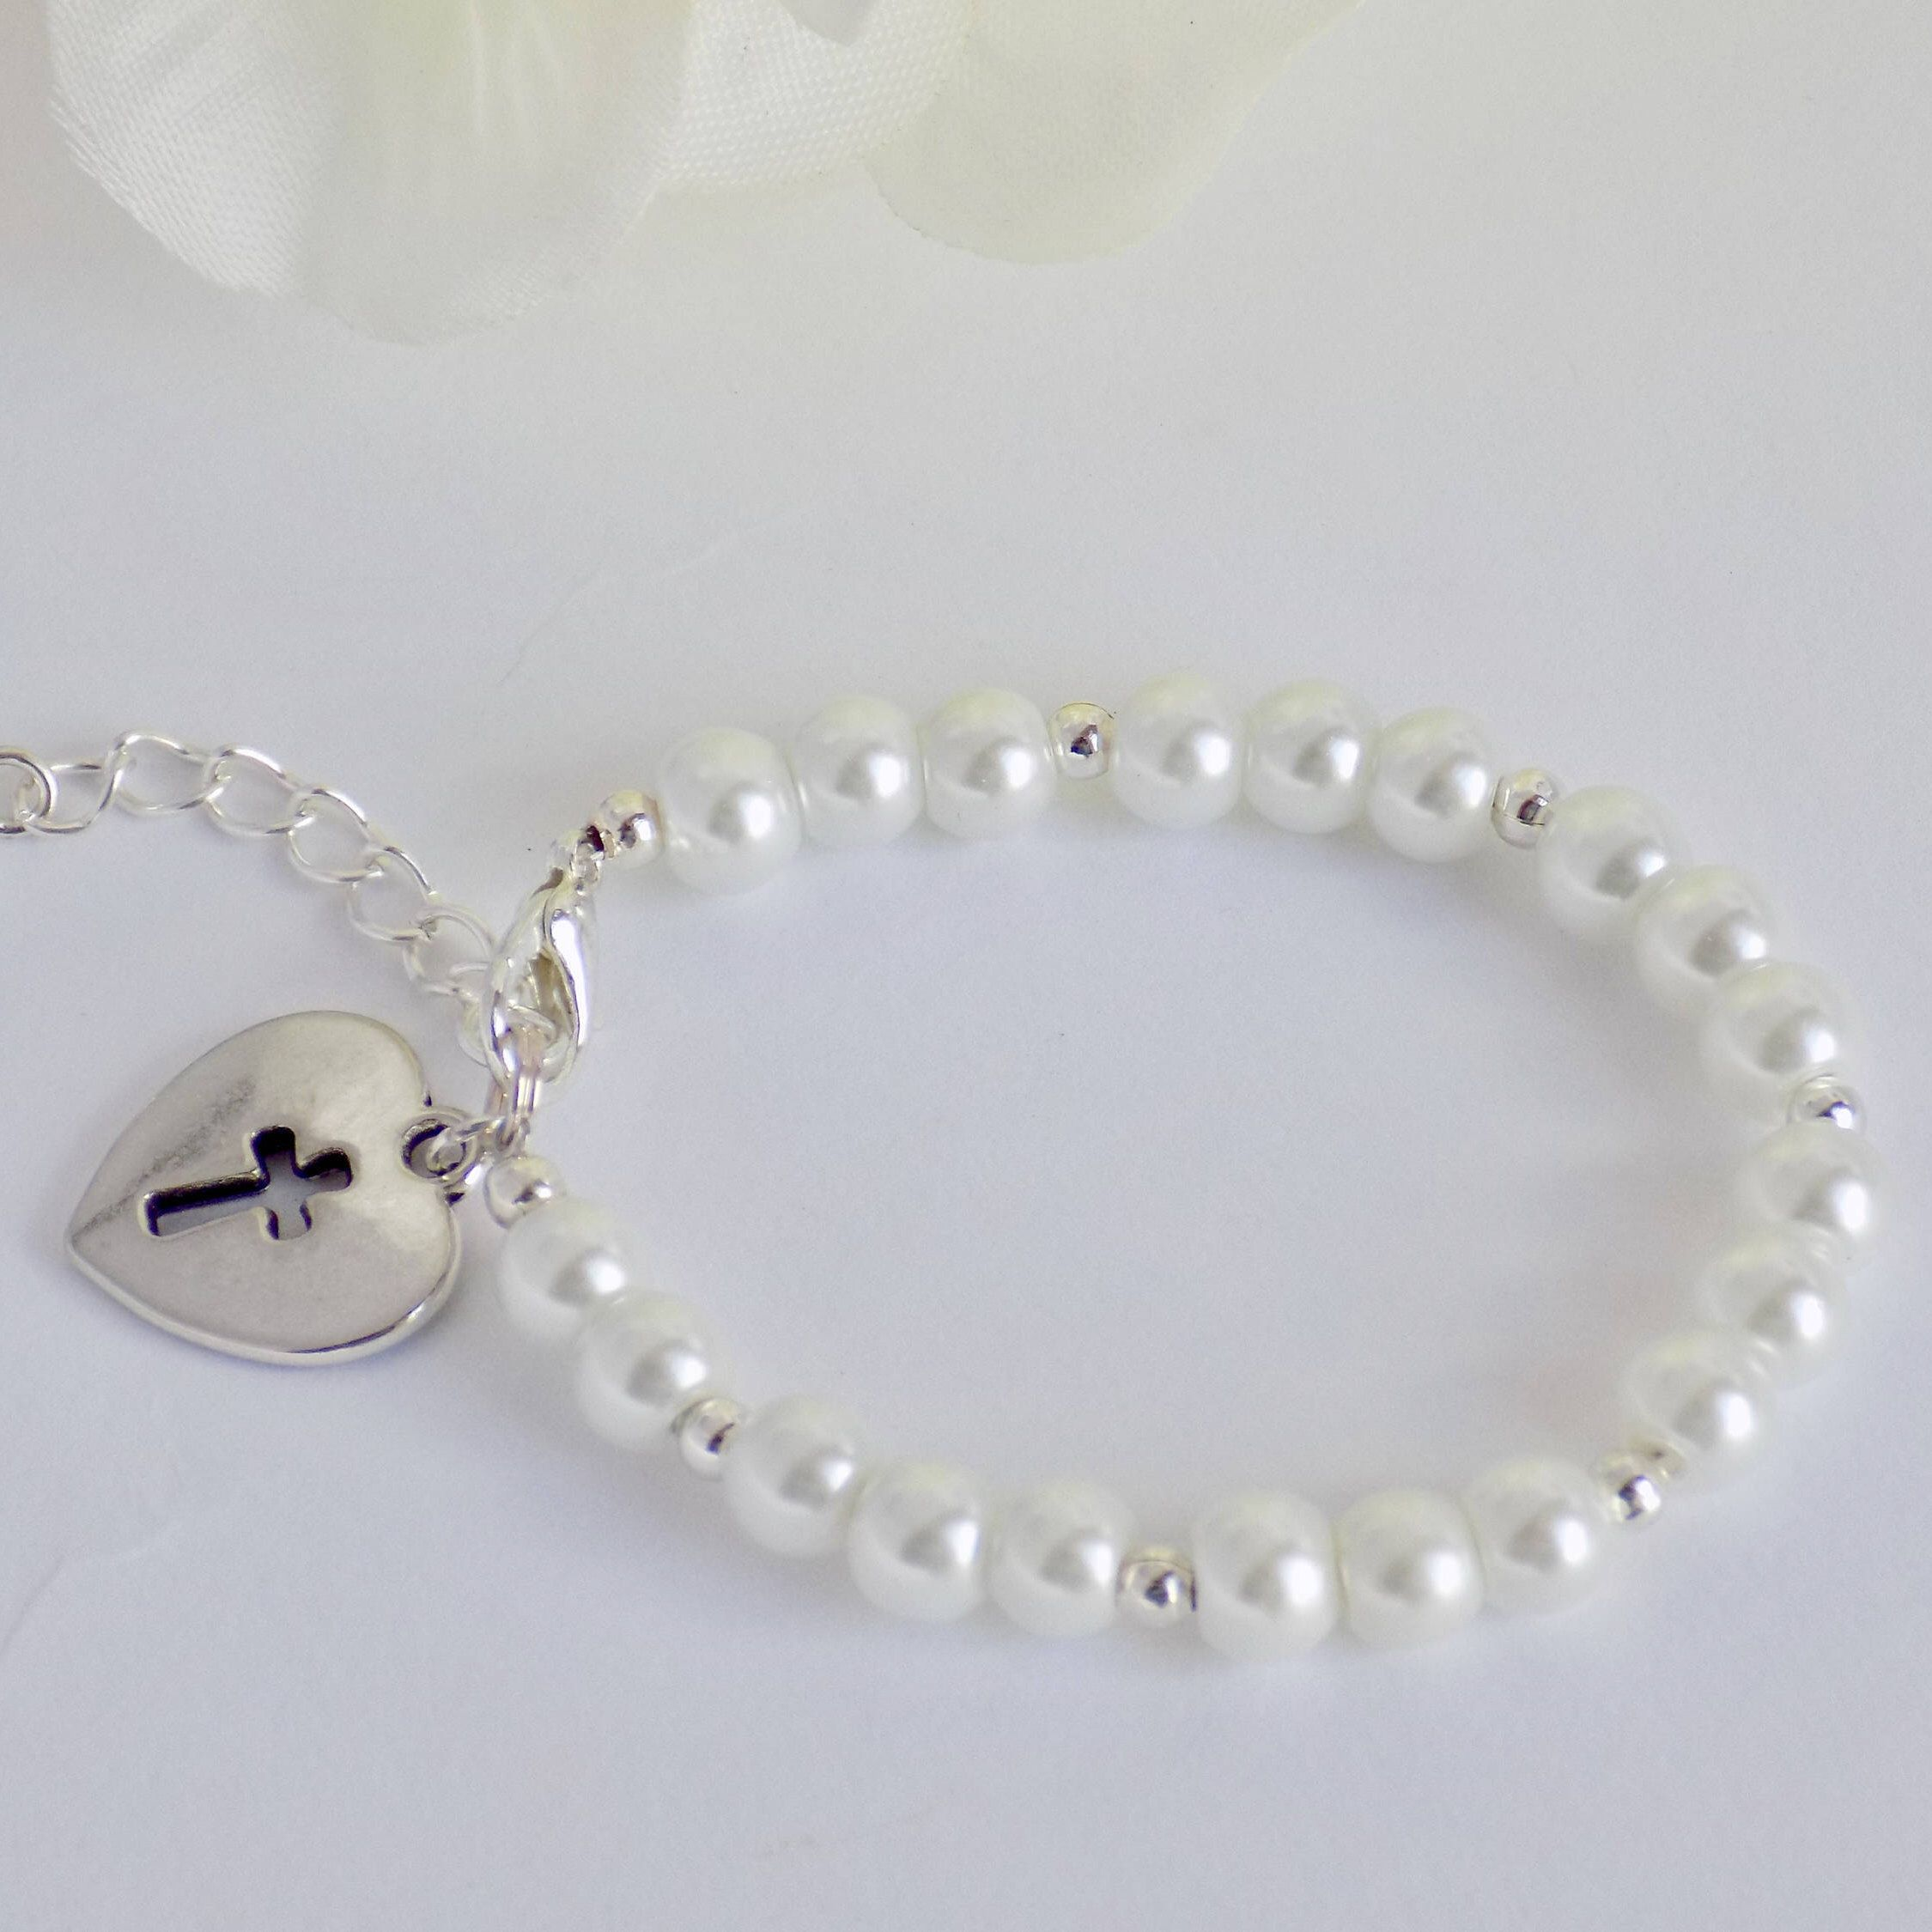 Communion bracelet holy communion bracelet first communion gift